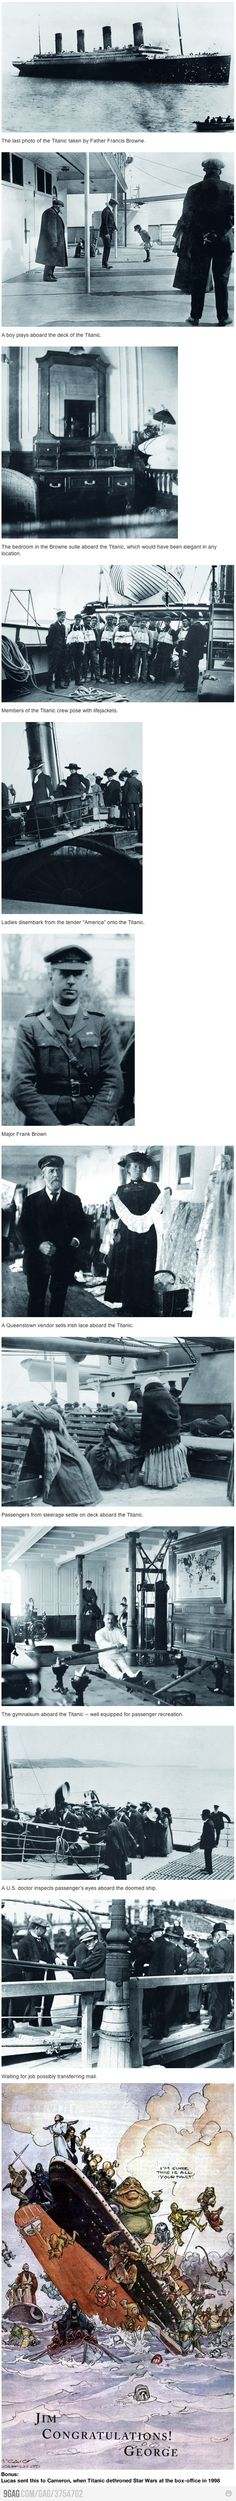 Some pictures of the Titanic